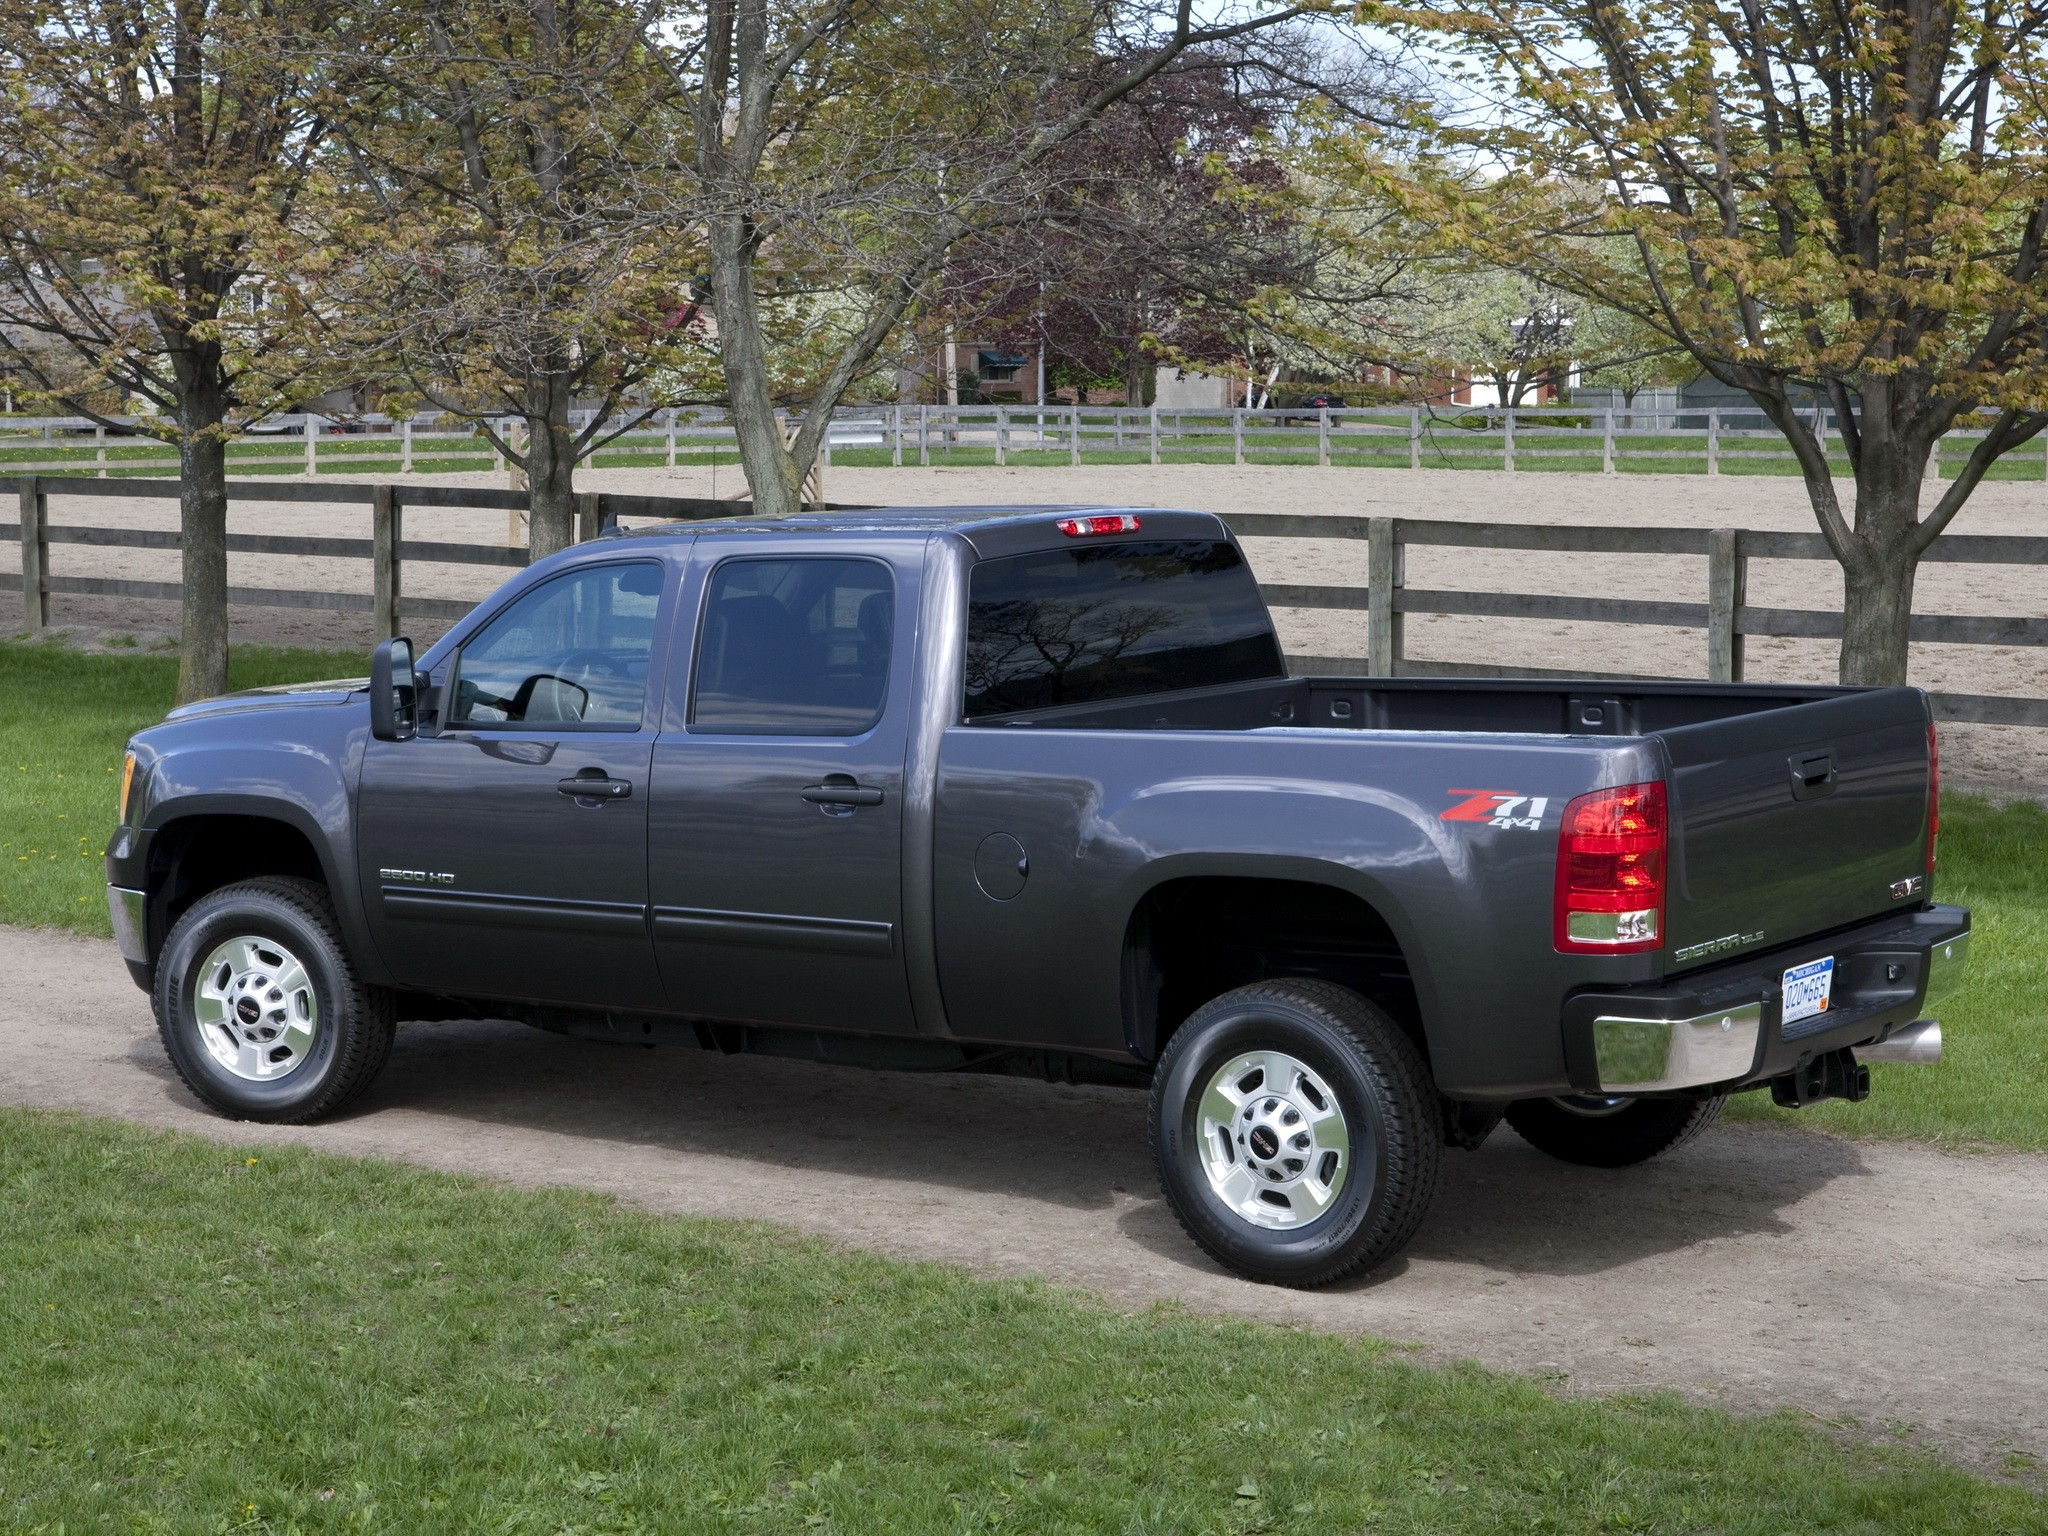 2008 GMC Sierra 2500hd #23